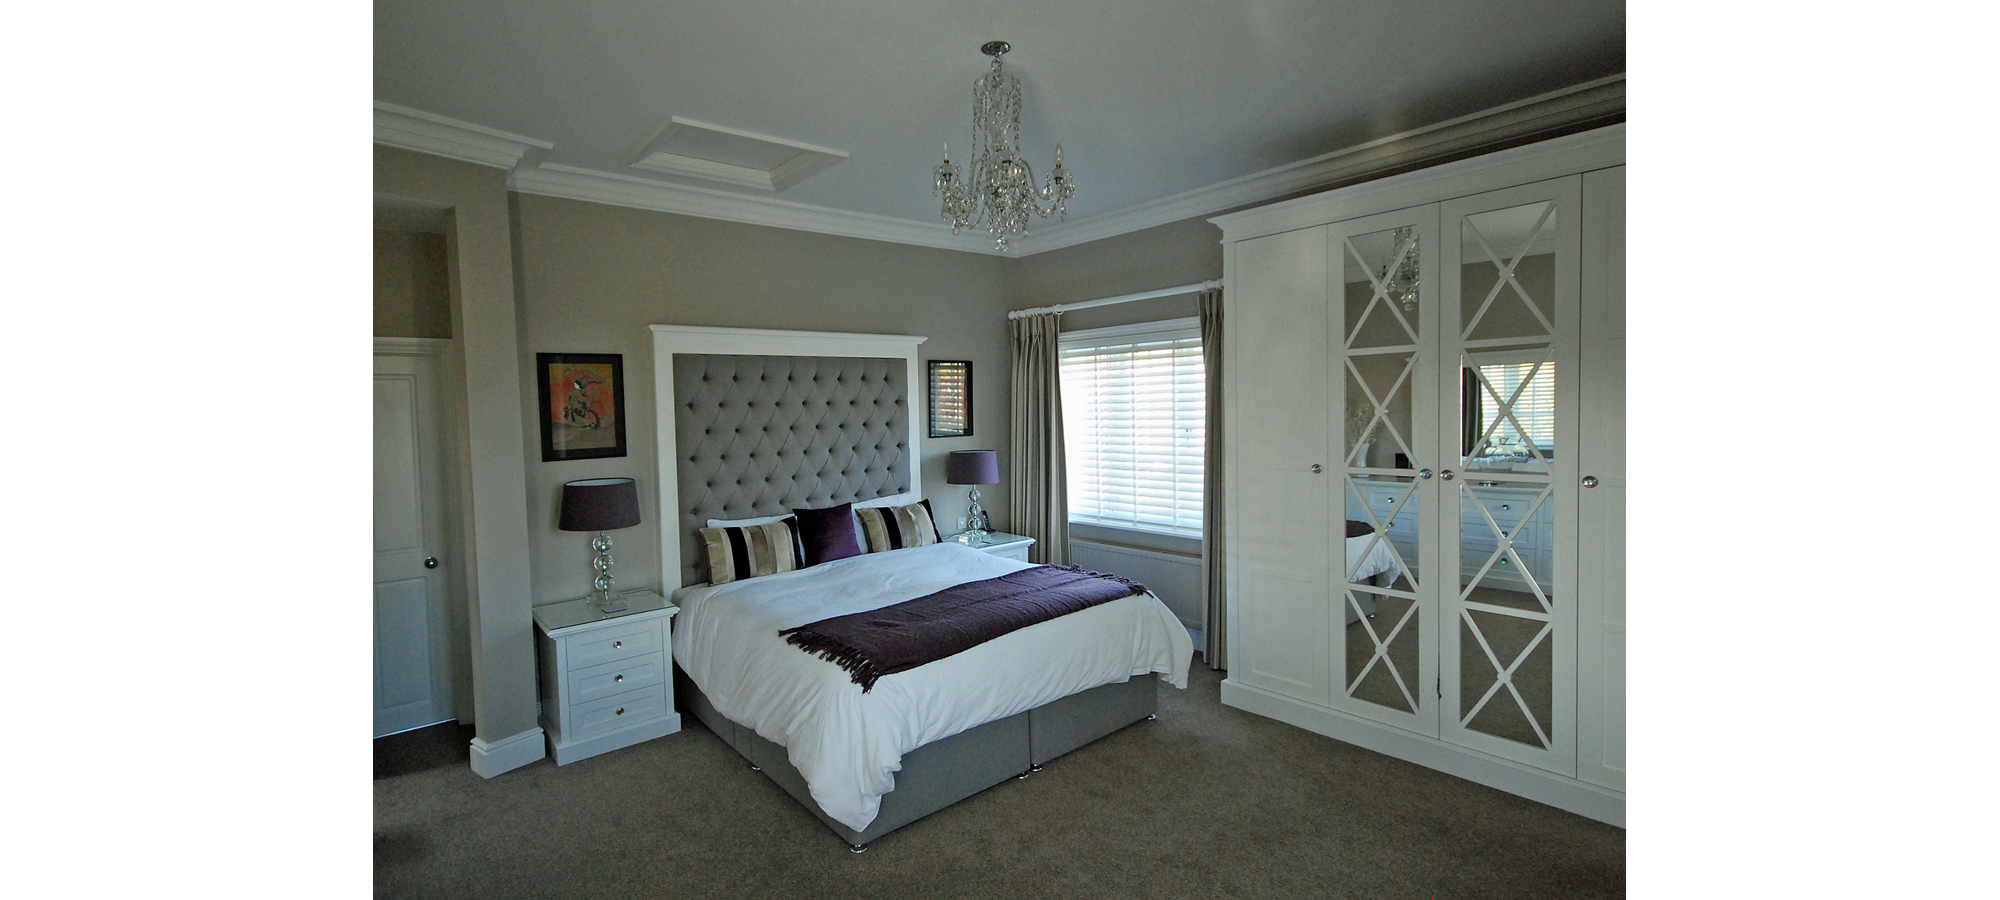 White painted bedroom set furniture